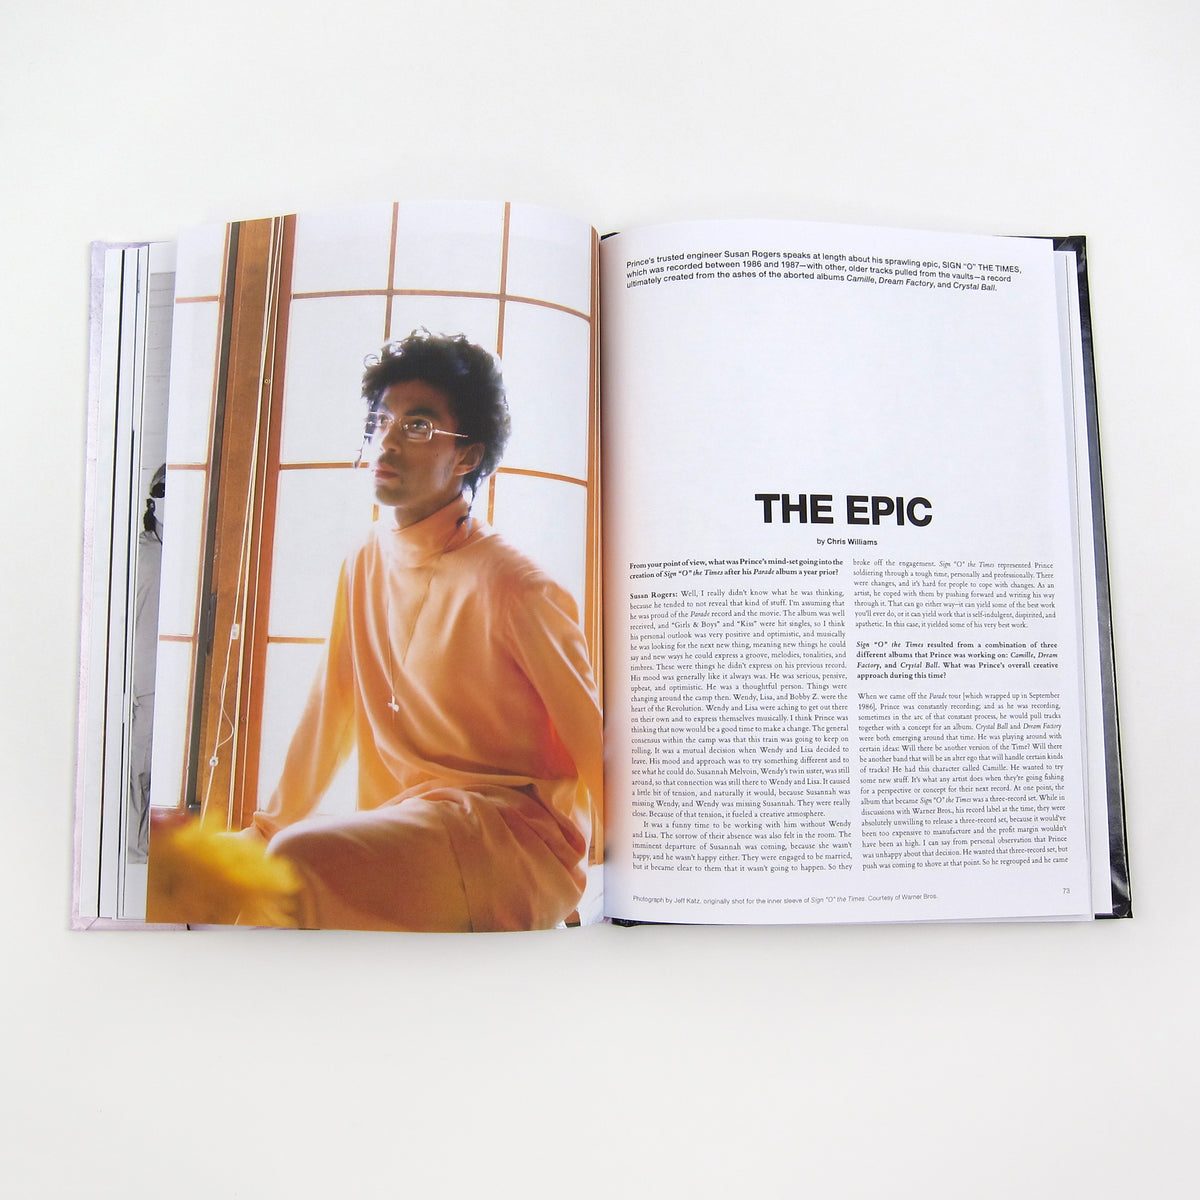 Prince: Vinyl LP /  Wax Poetics Book Pack